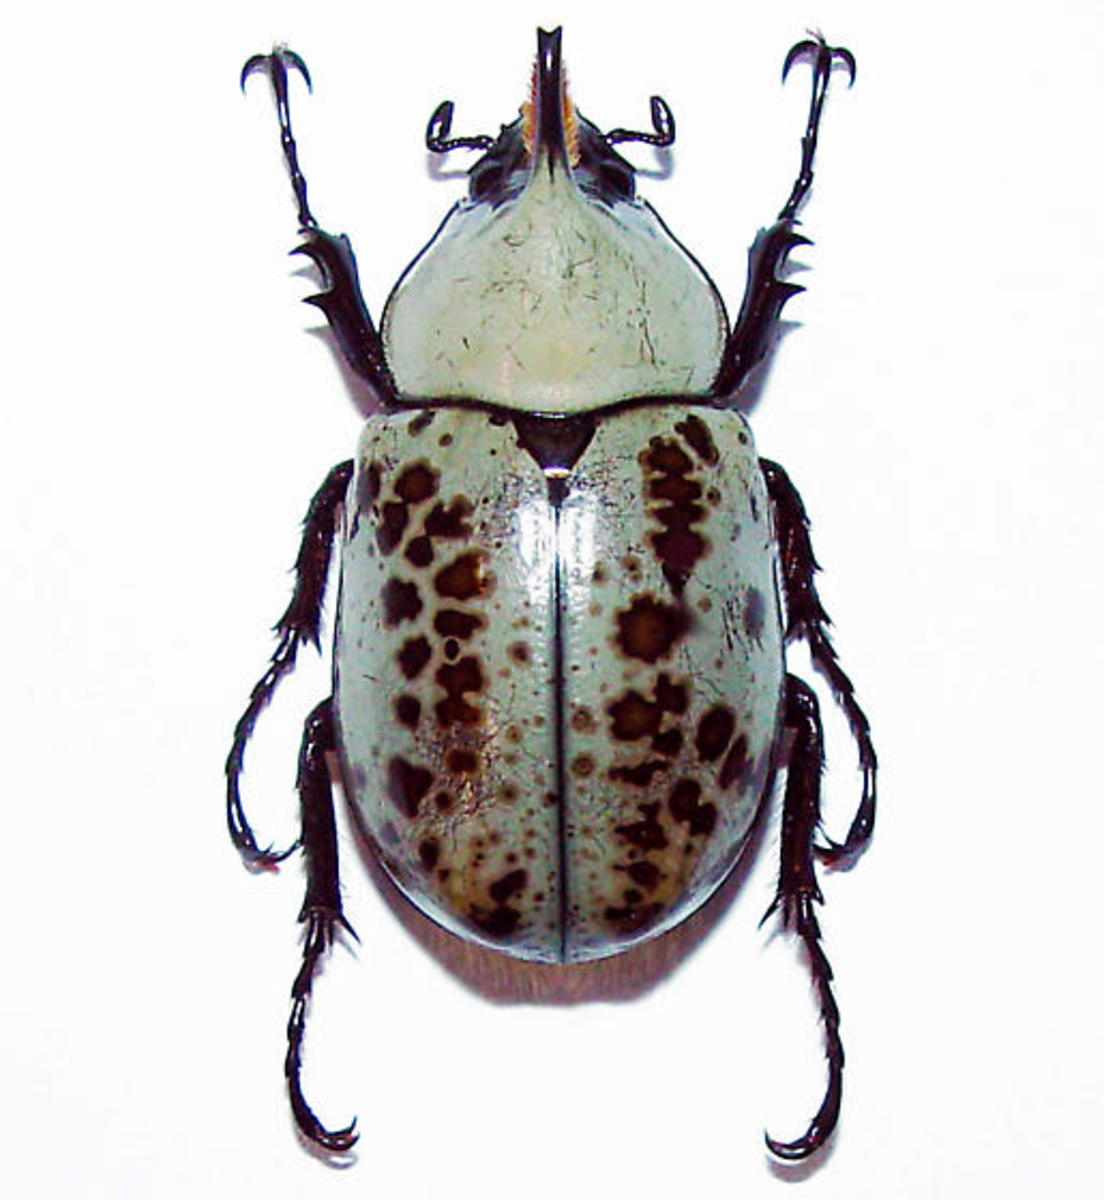 This is another look of a minor male hercules beetle.  Note that he is smaller than the one in the photo above and lacks fully-developed pincers.  Some minor male beetles lack pincers altogether.